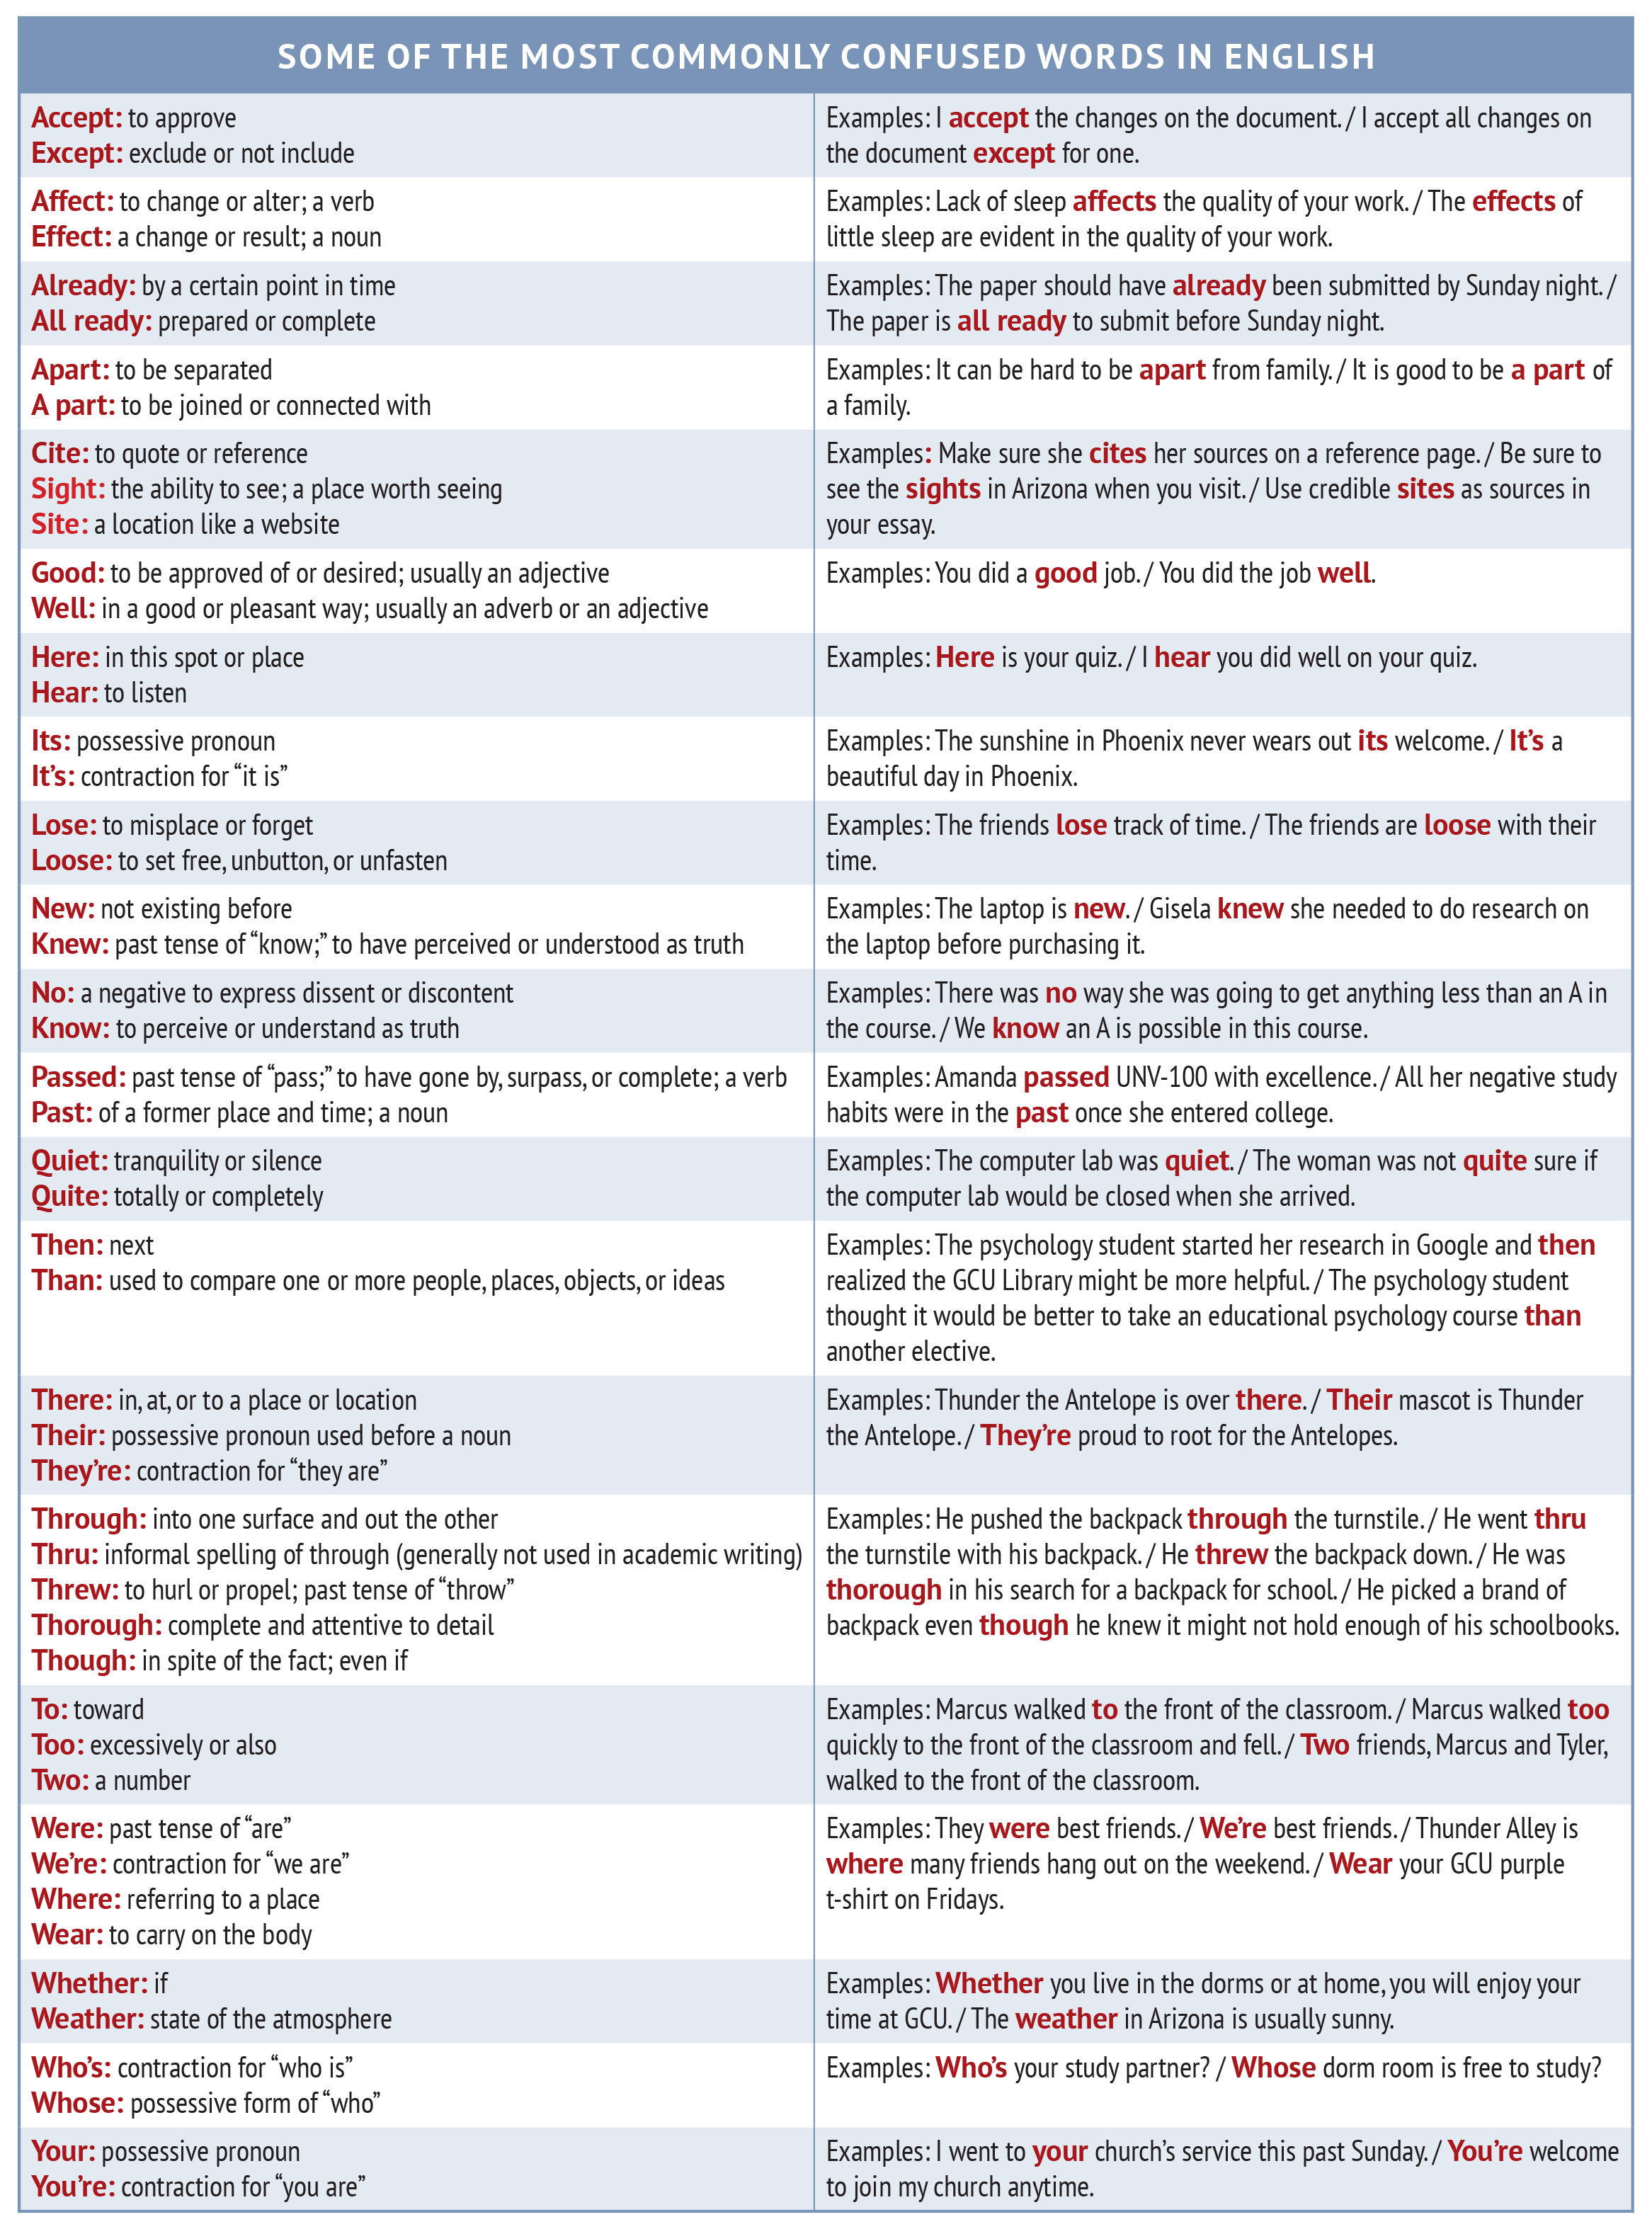 Confused Words Worksheet